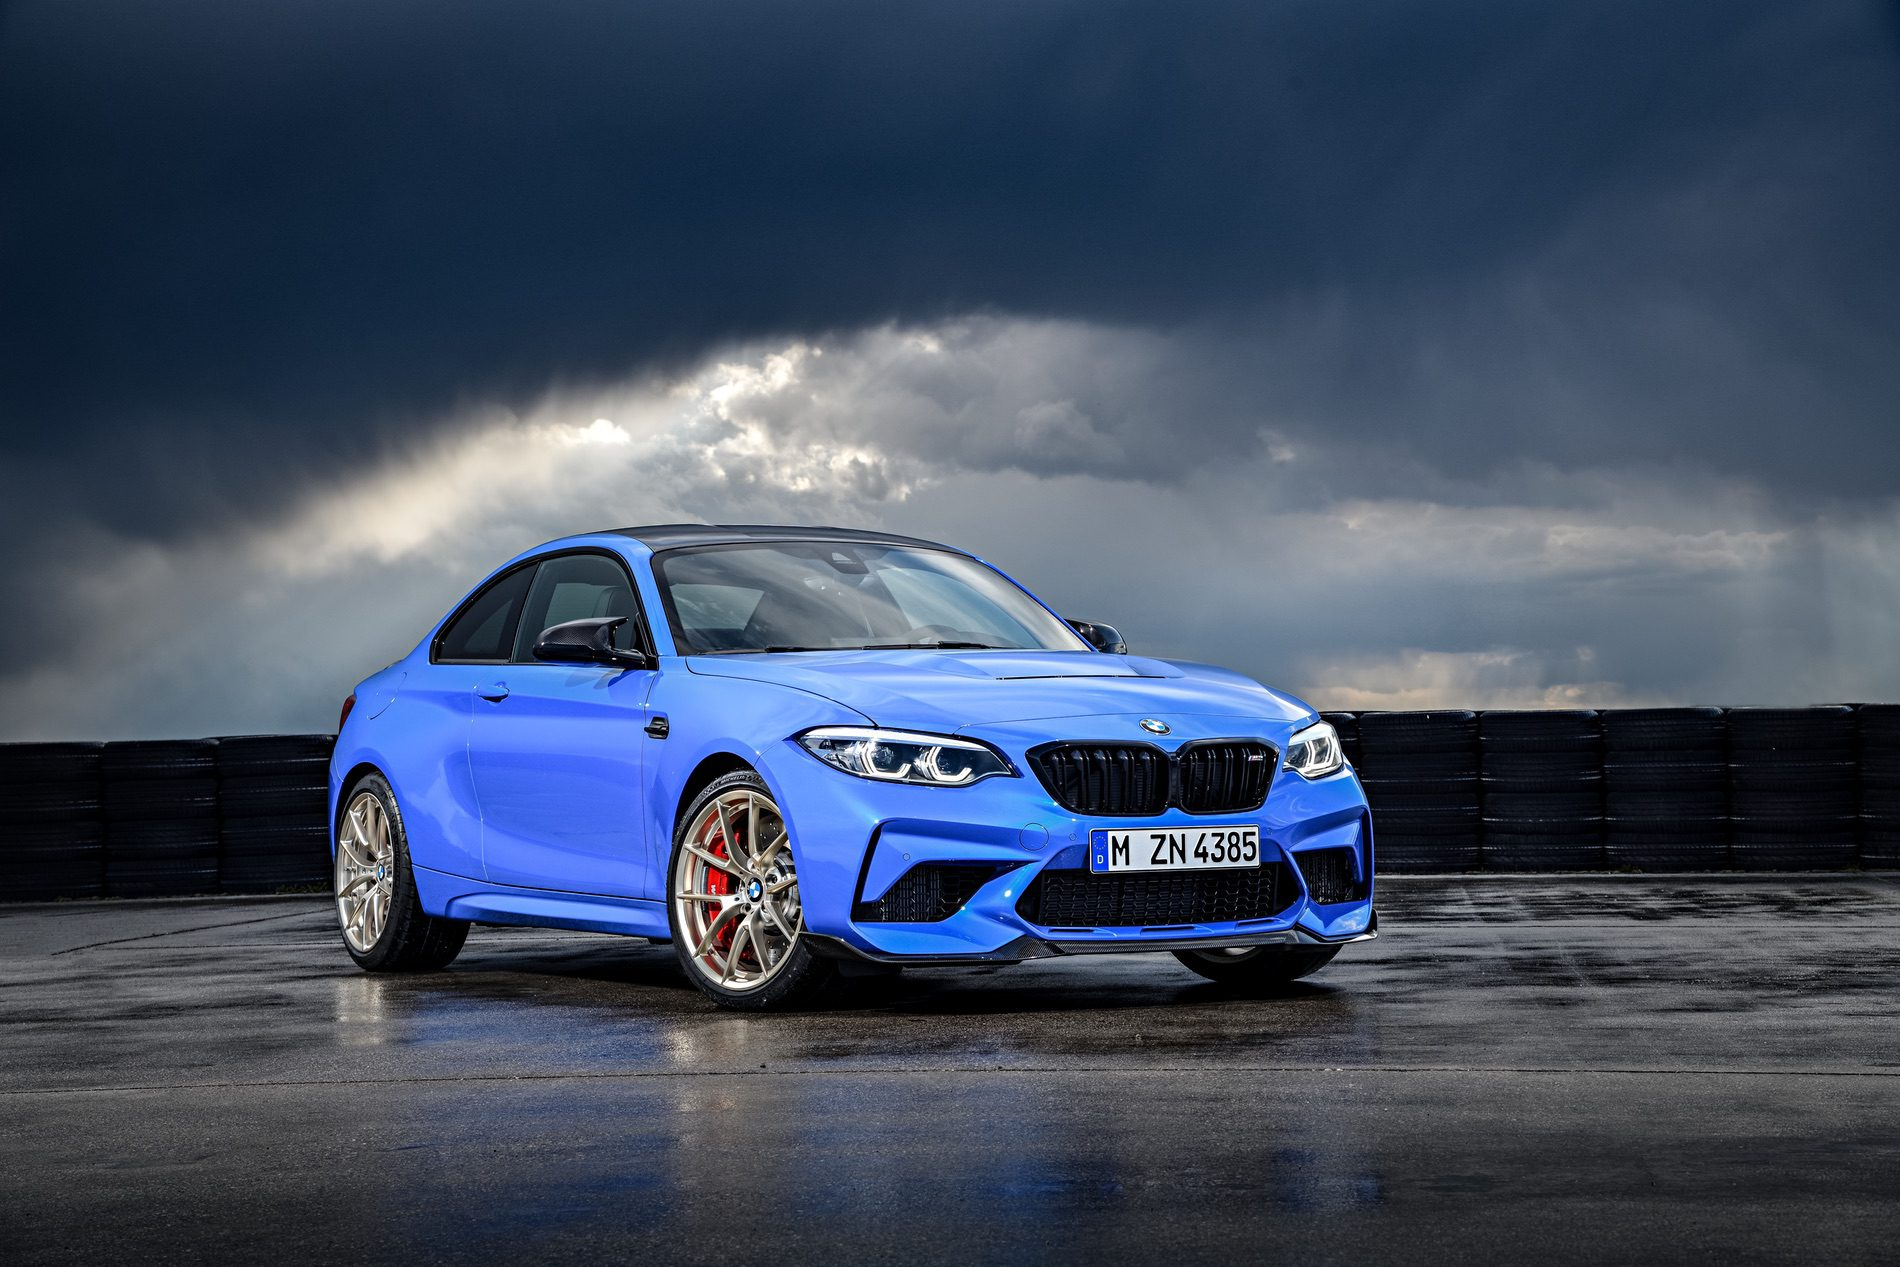 2021 BMW M2 CS Misano Blue 95